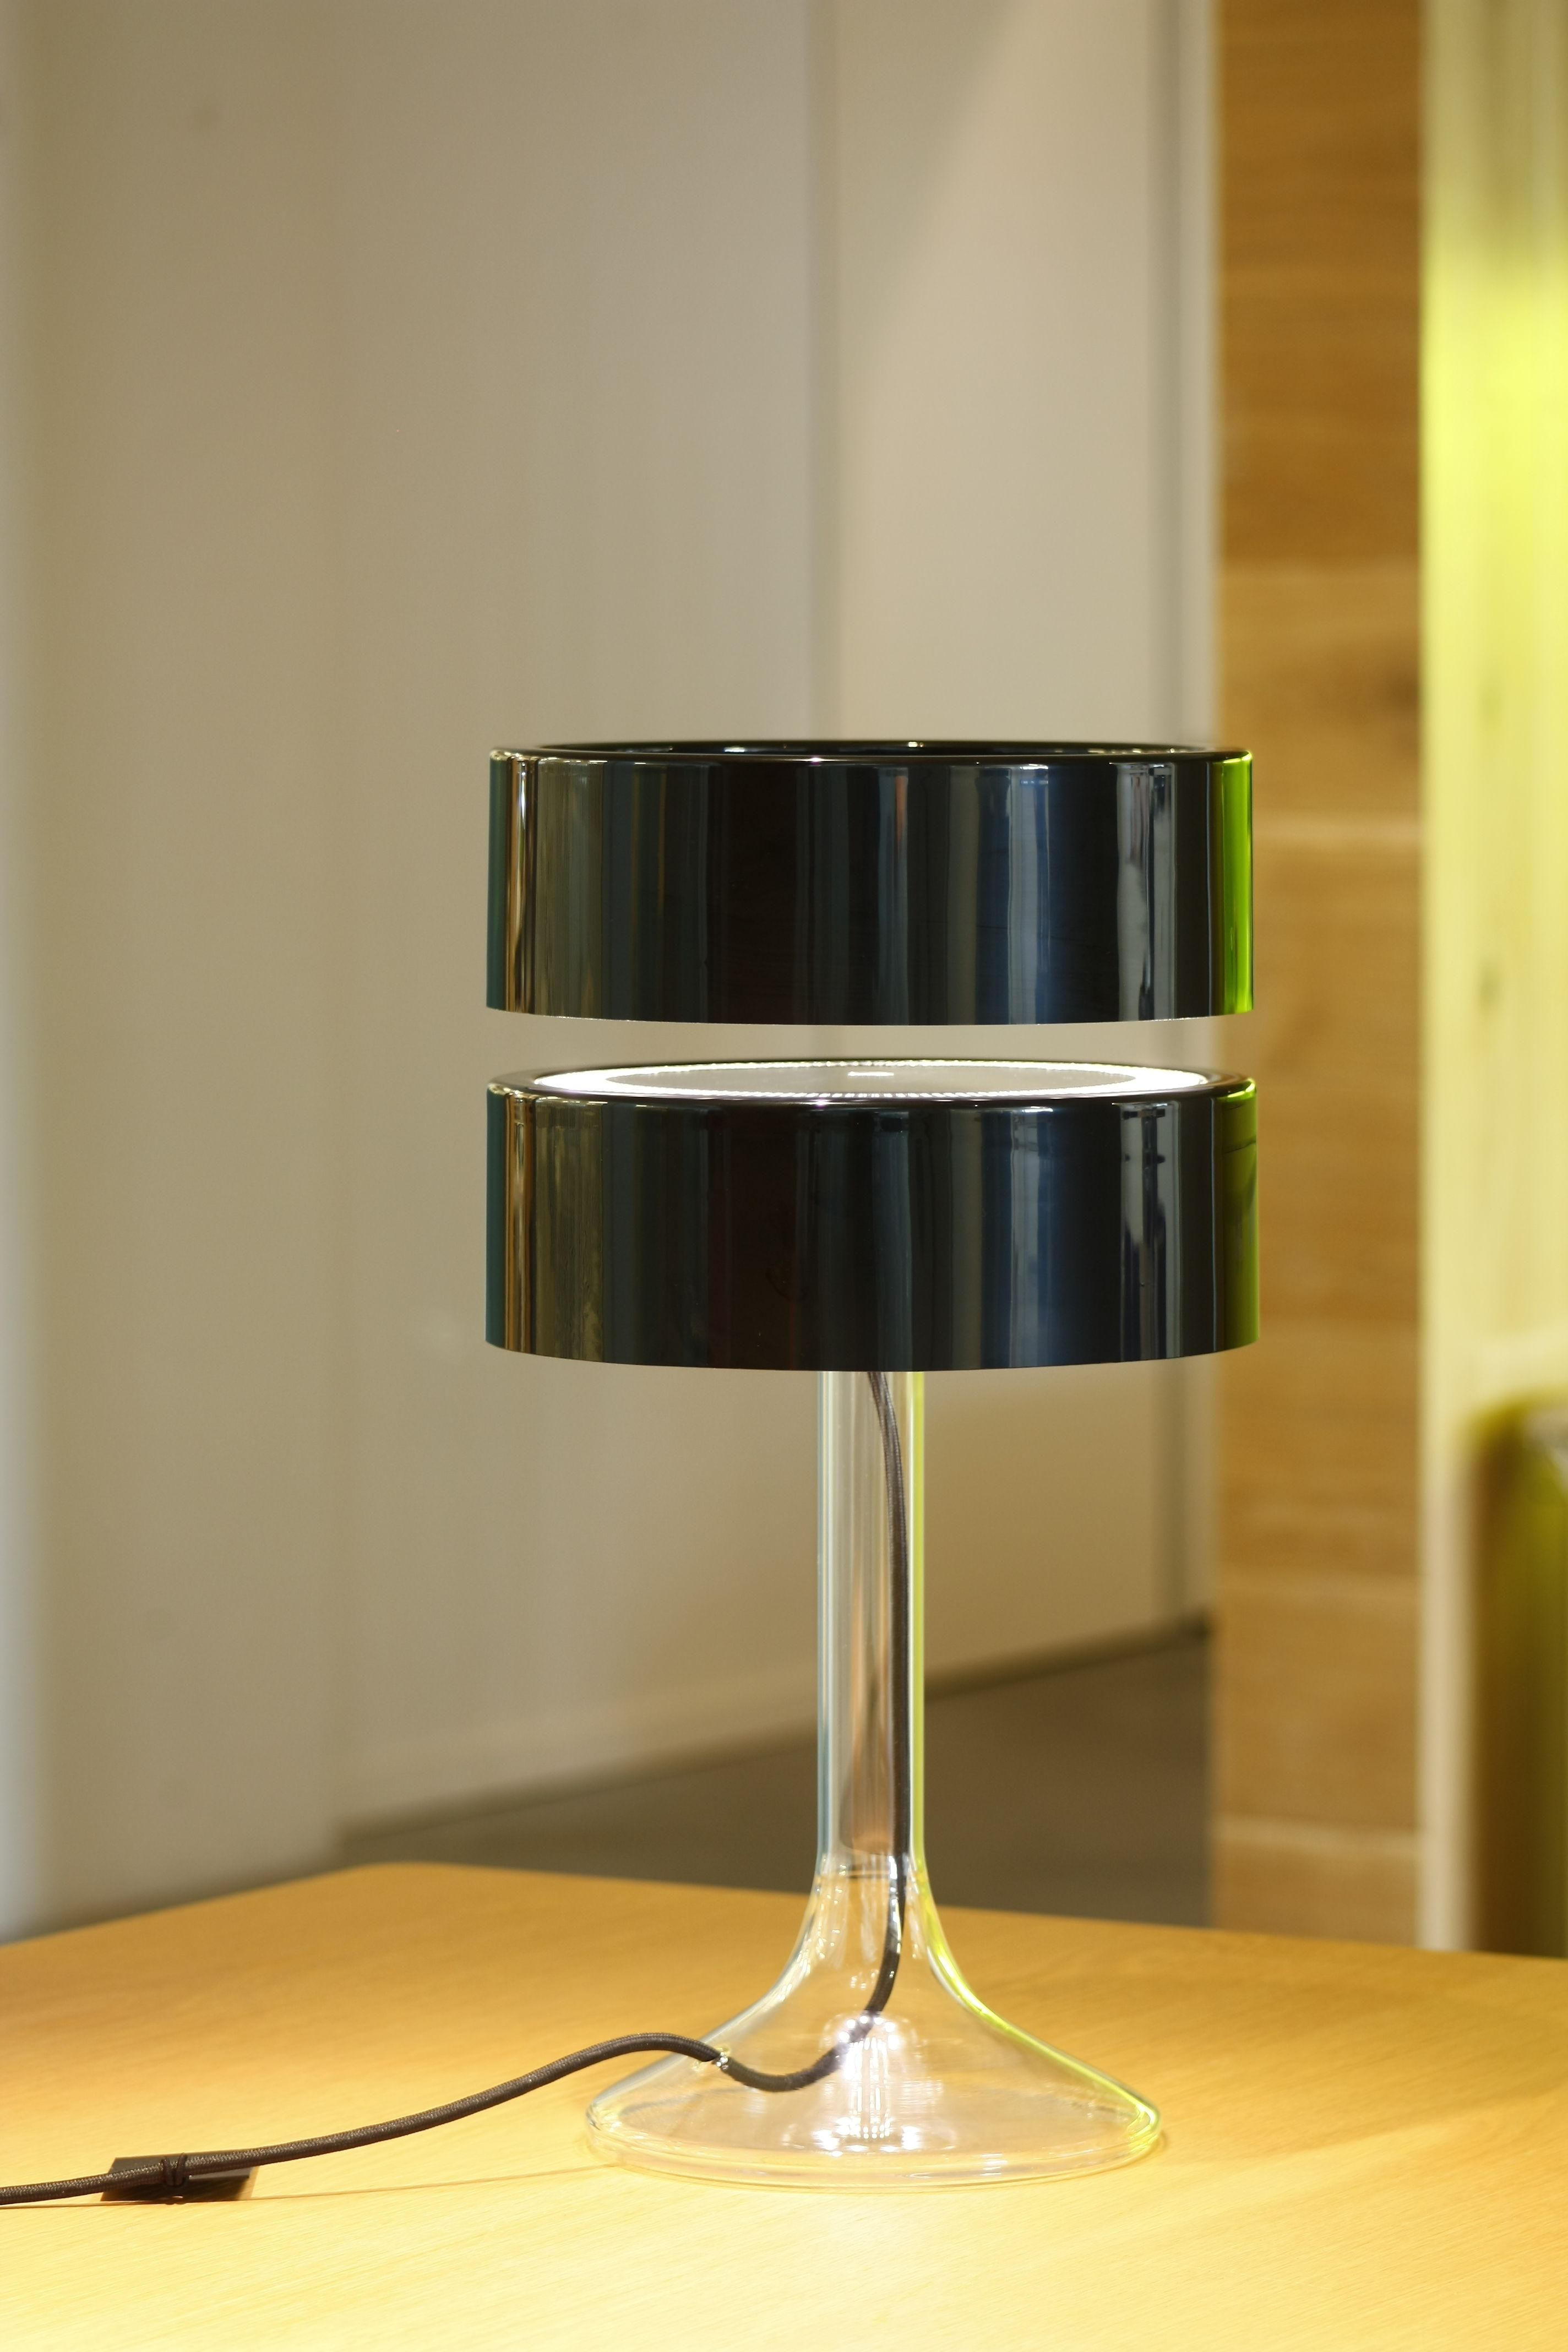 Fascinations levitron levitating lamp black is it art is it a fascinations levitron levitating lamp black is it art is it a triumph of technology home pinterest geotapseo Image collections